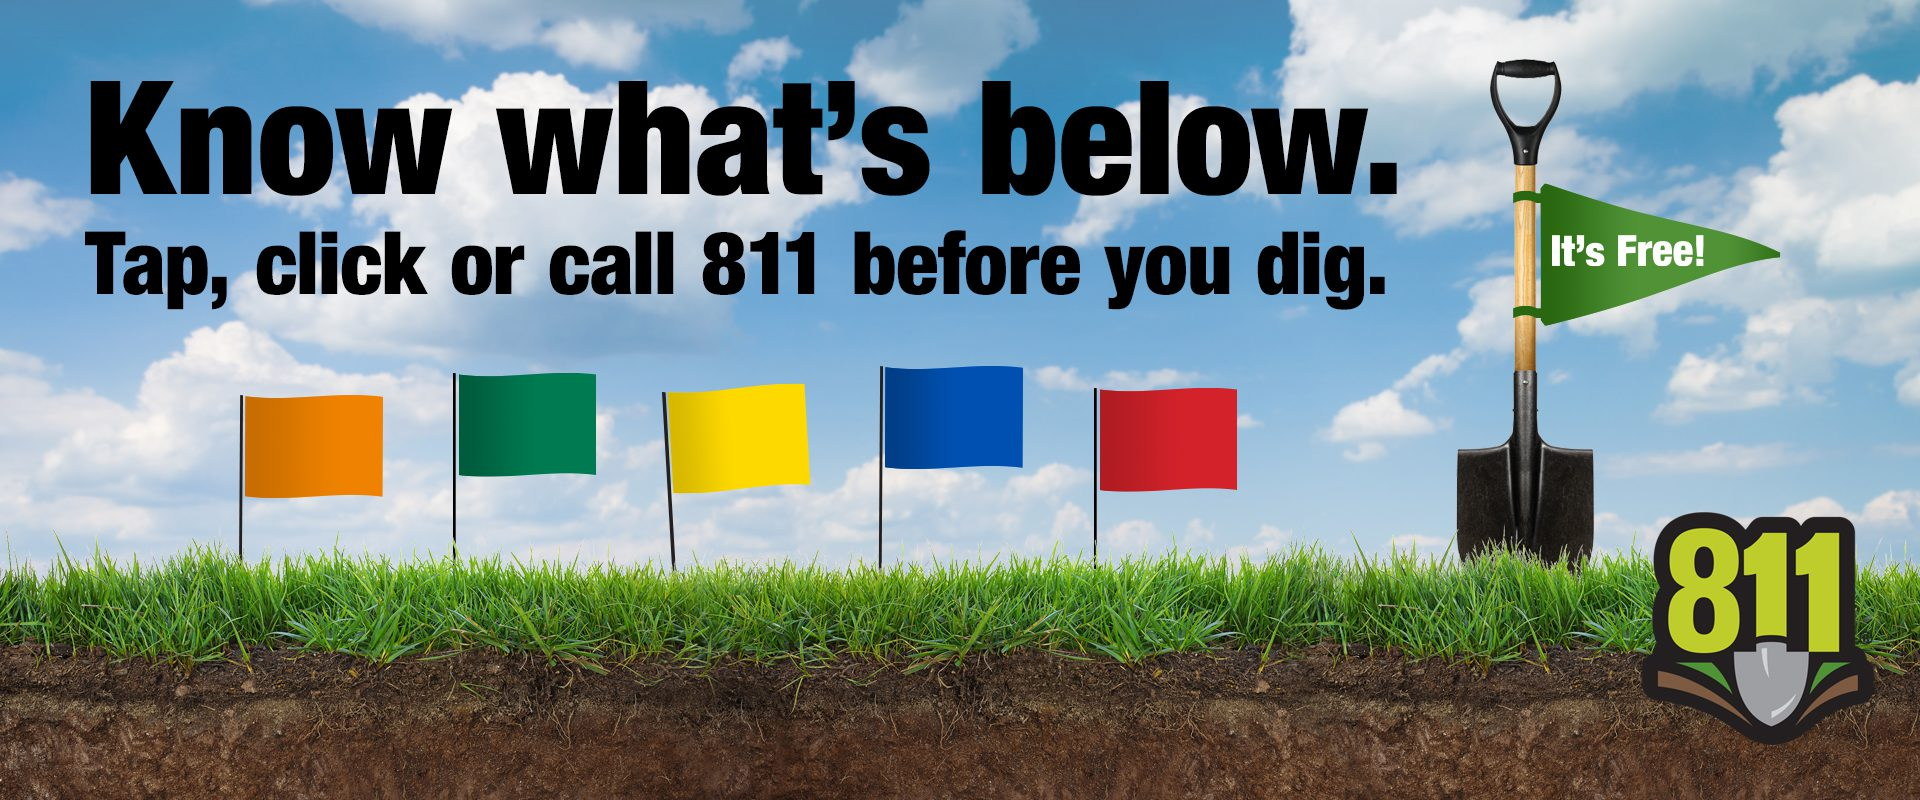 Know what's below. Tap, click or call 811 before you dig.